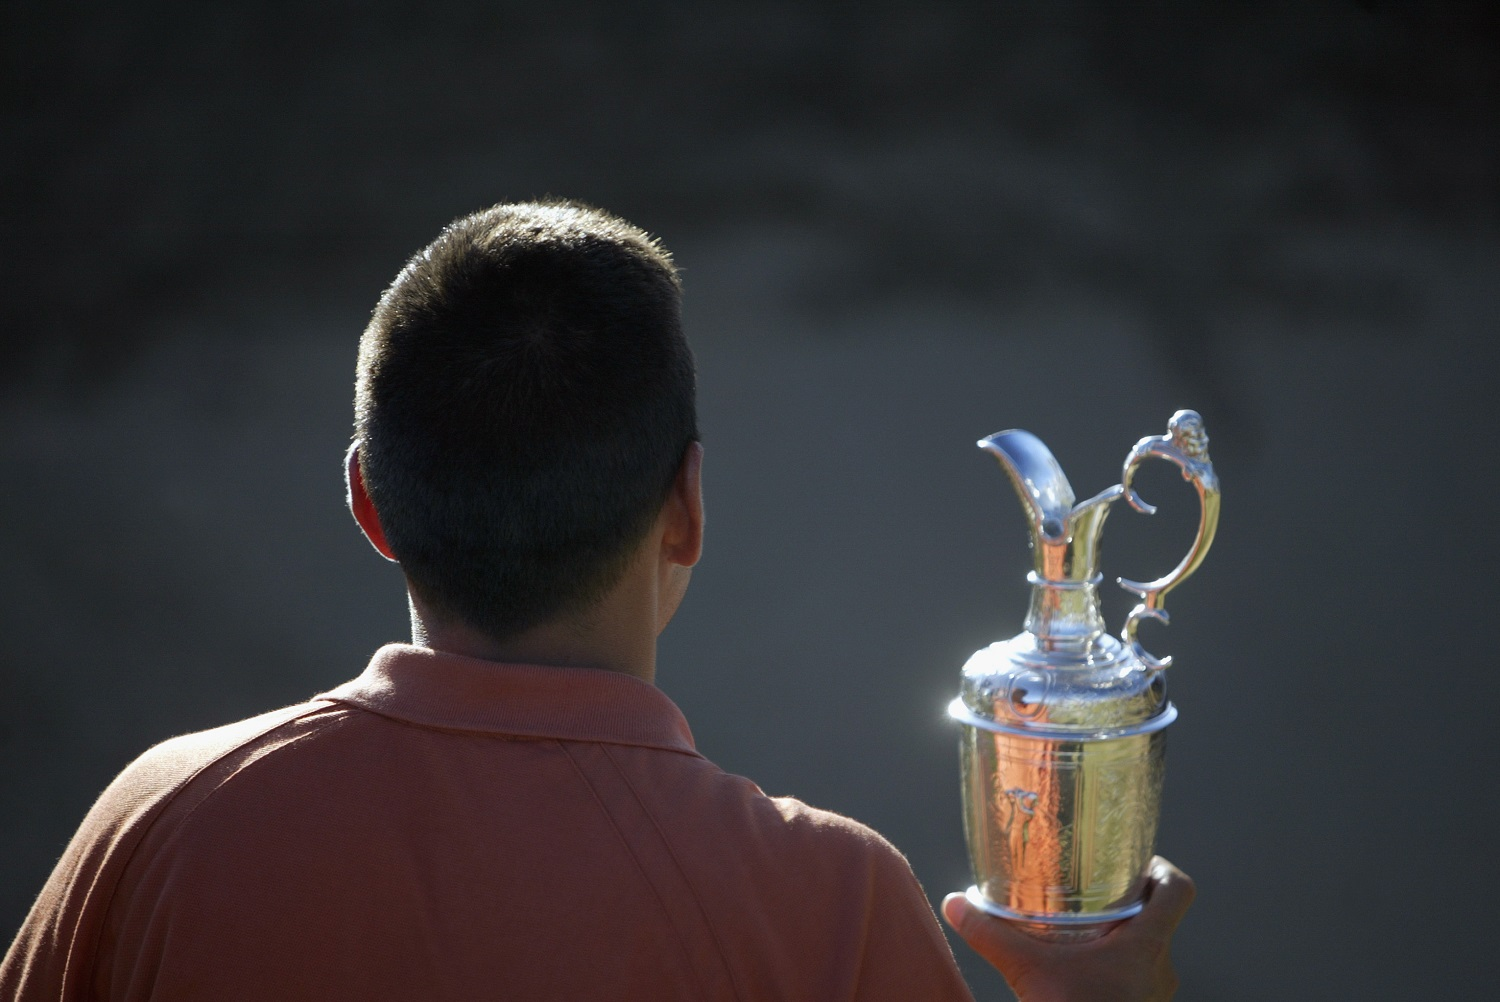 Who Was the Lowest-Ranked Golfer to Win a Major Championship?